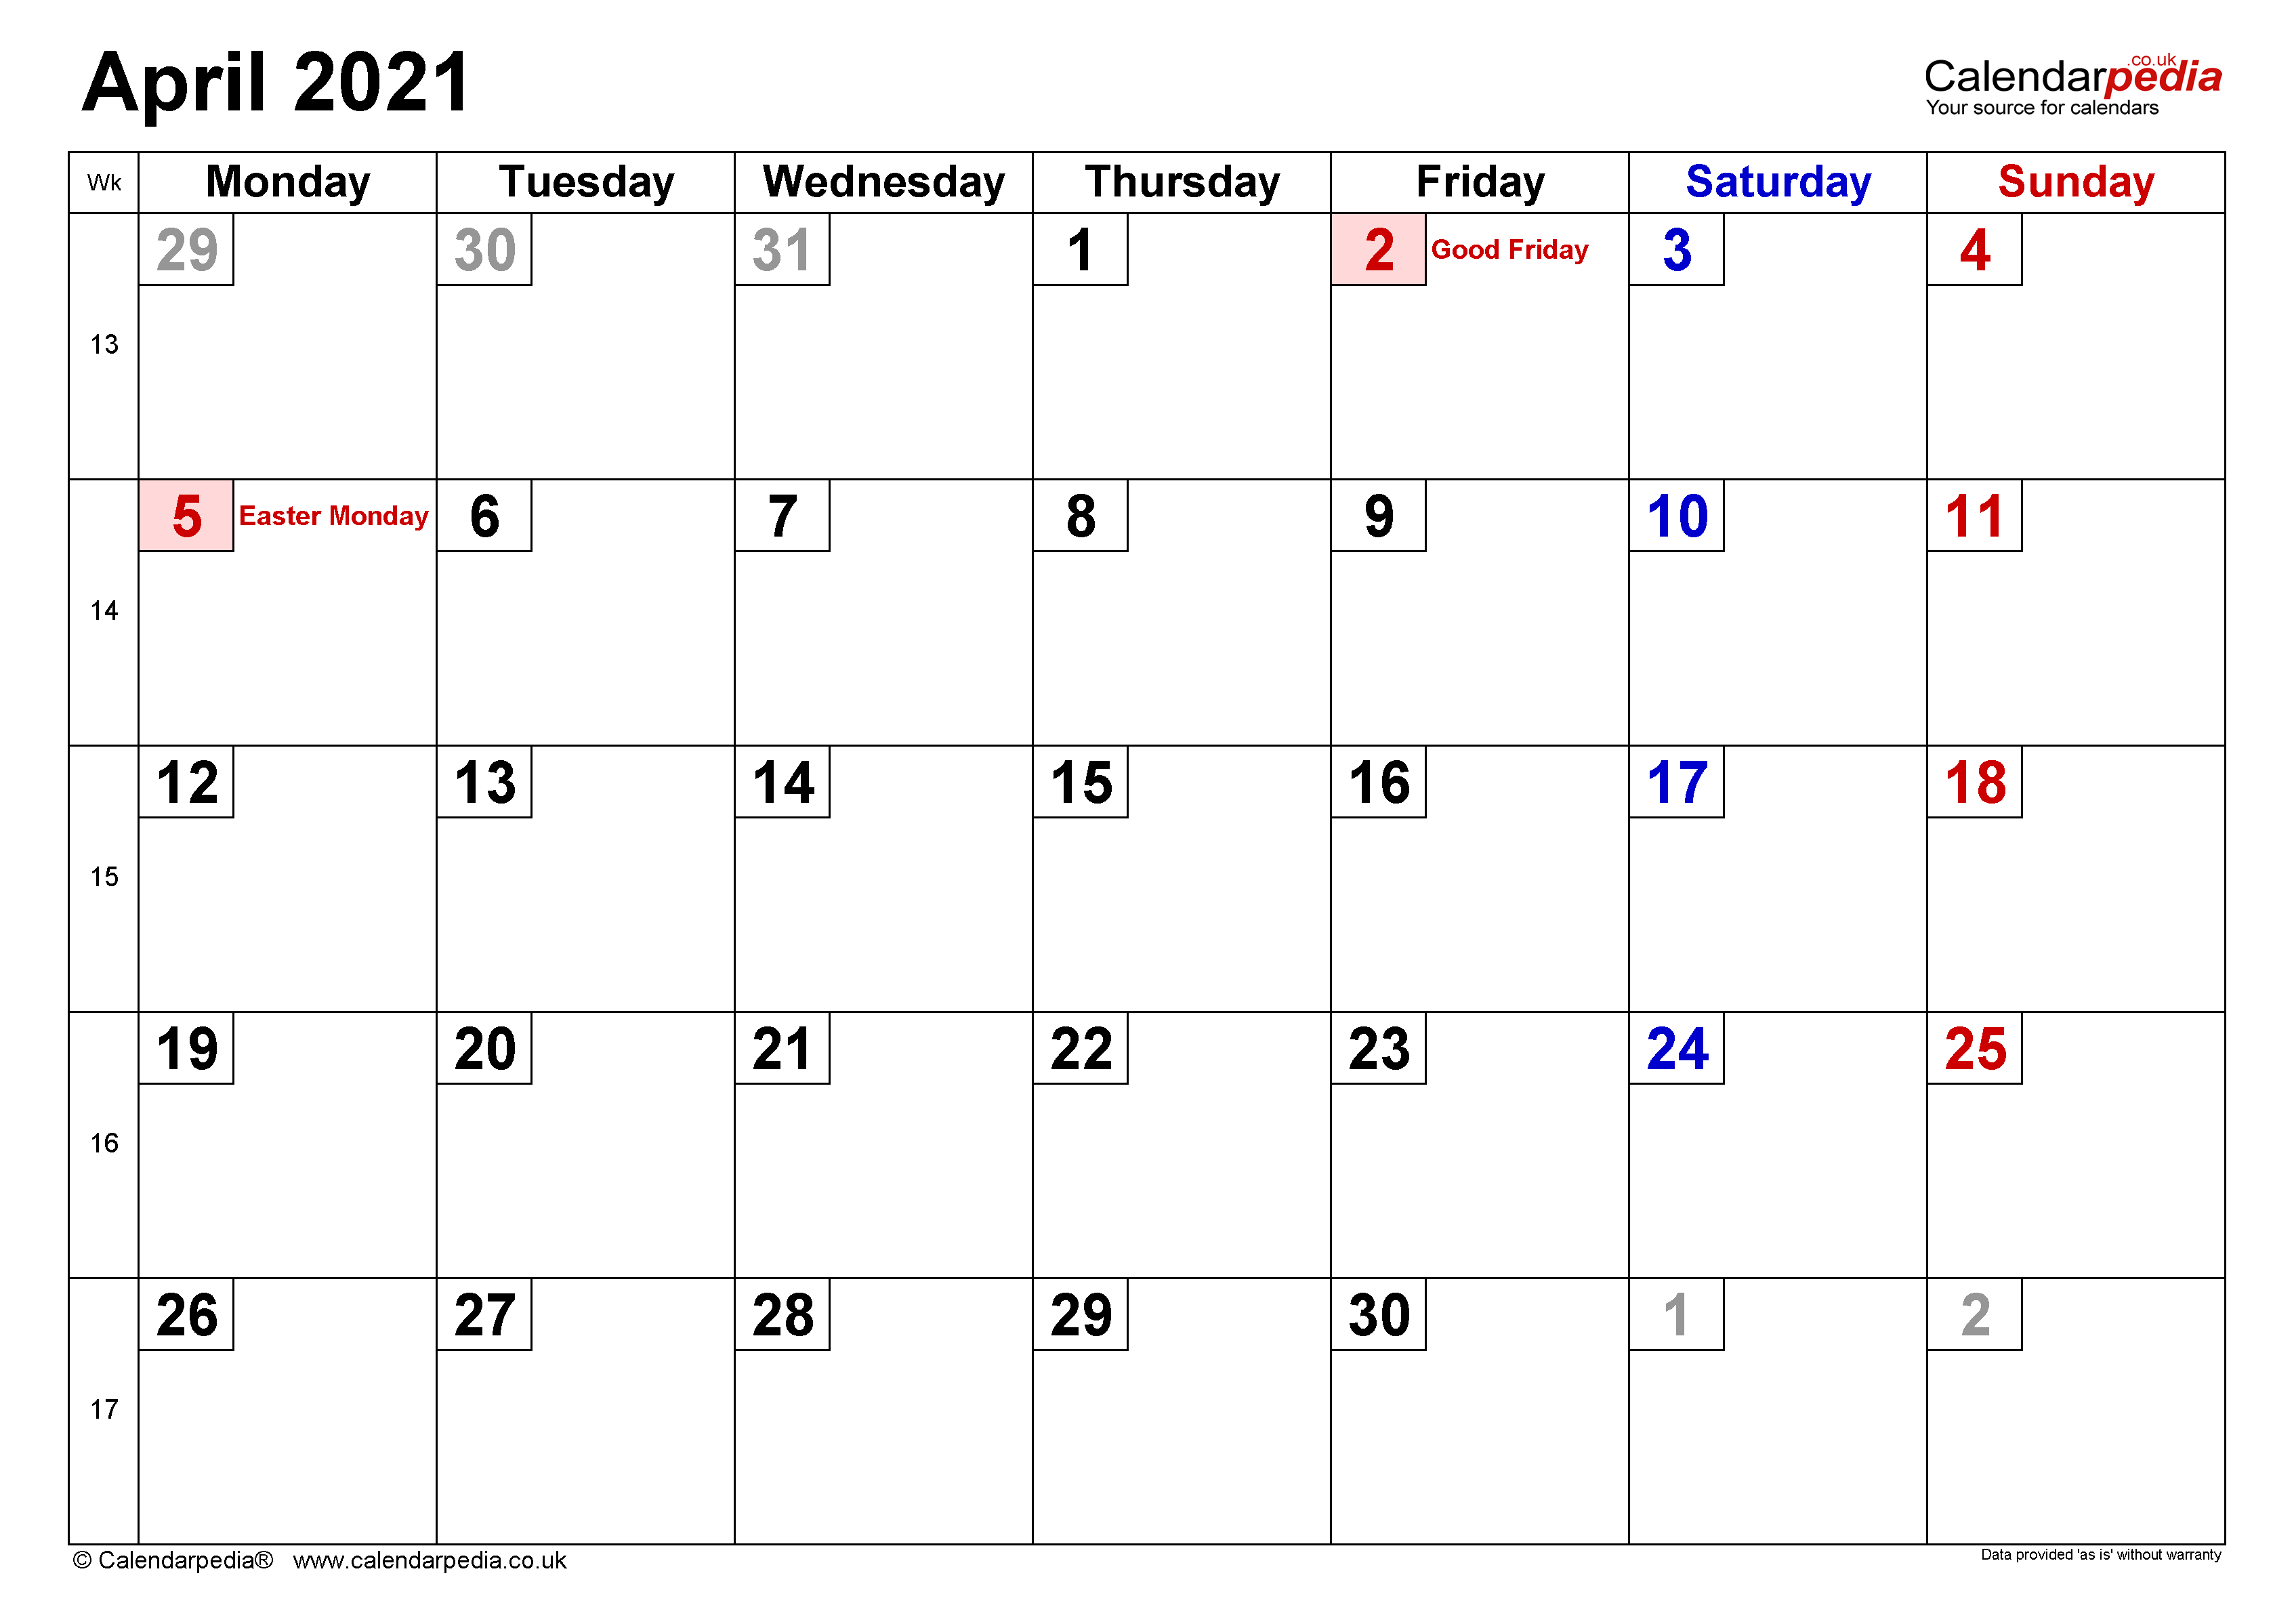 Calendar April 2021 (UK) with Excel, Word and PDF templates